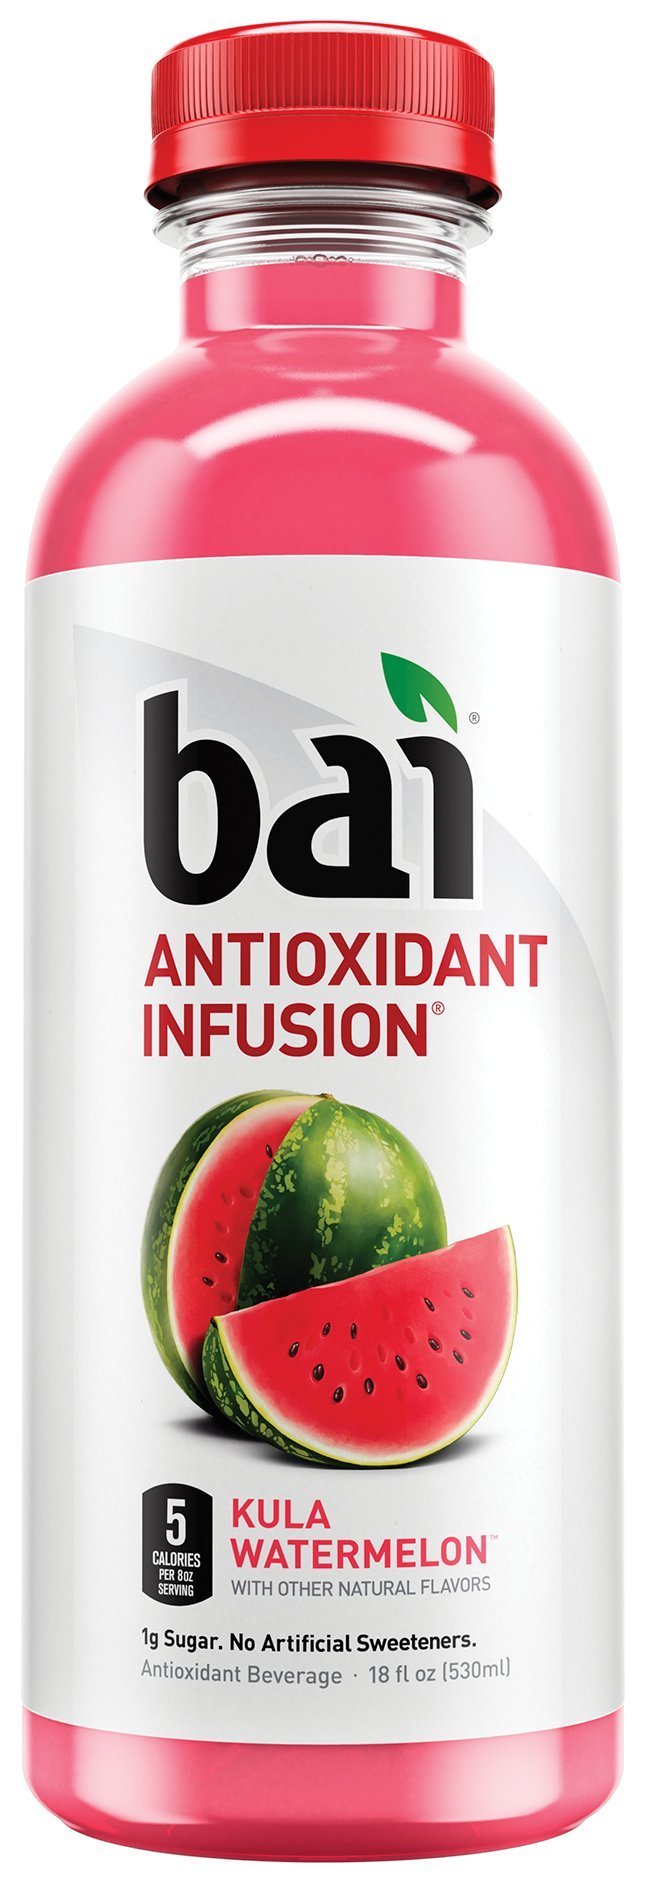 Bai Kula Watermelon, Antioxidant Infused, Flavored Water Drink, 18 Fluid Ounce Bottles, 12 count